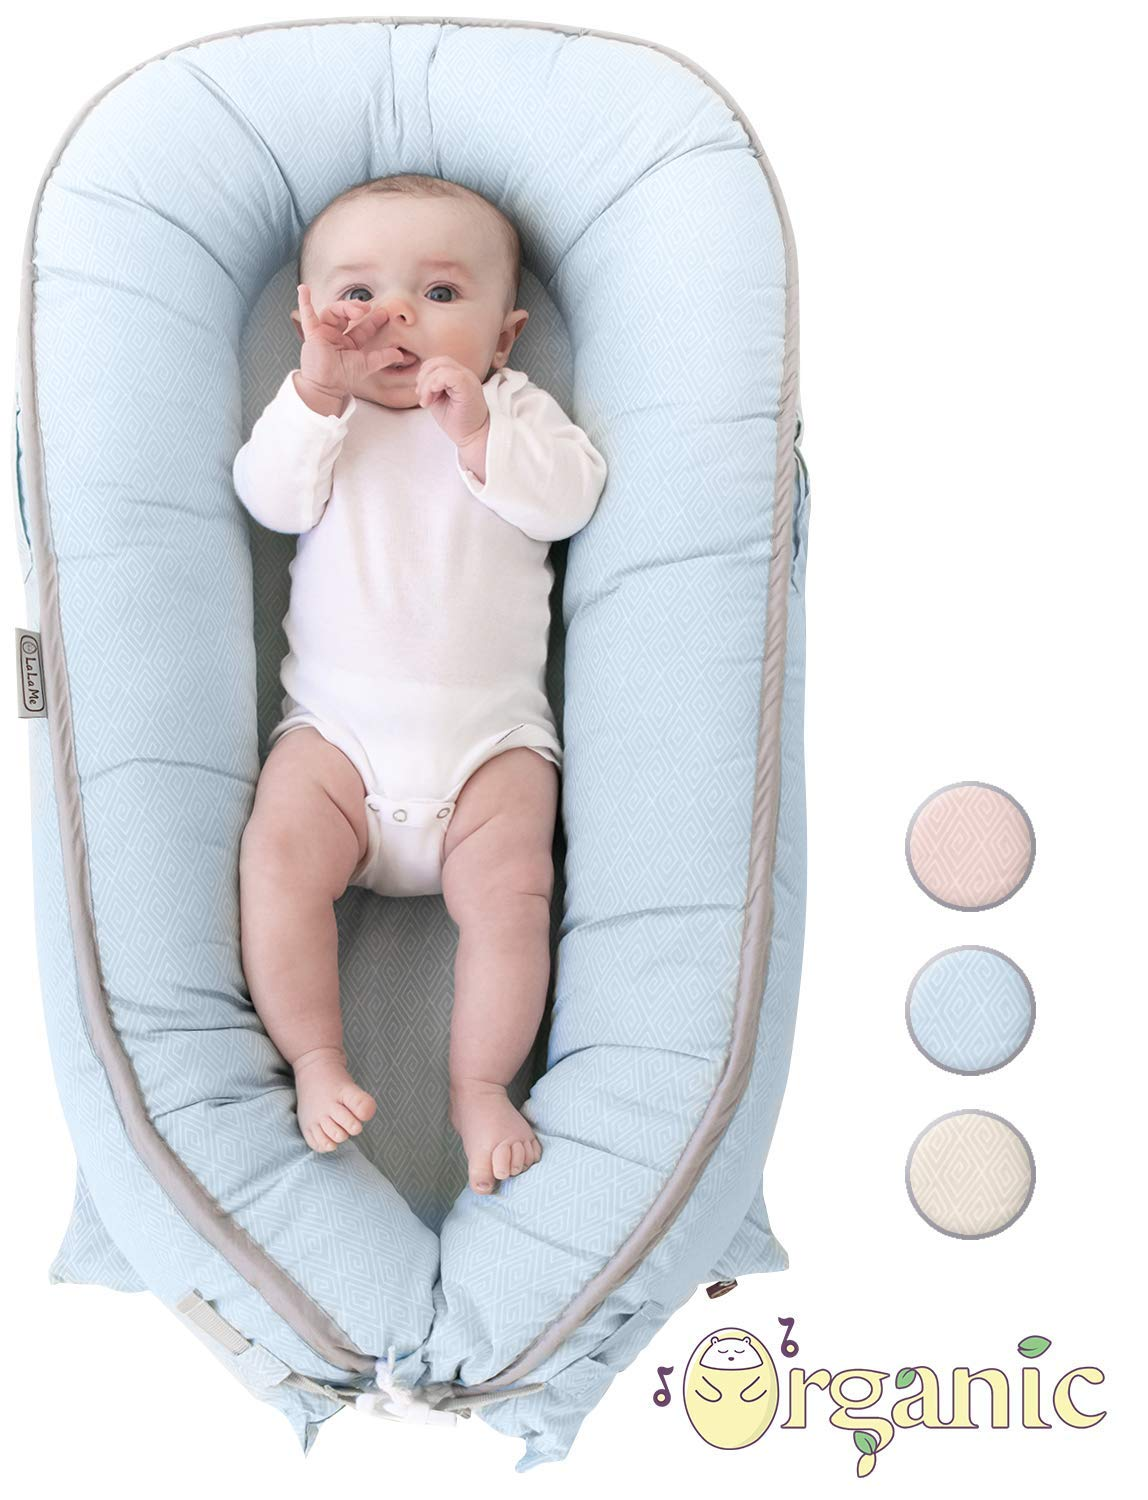 Organic Newborn Lounger | Water-Resistant Baby Nest | Portable Bed for Infants & Toddlers 0-12 Month | for Girls and Boys | Use as Bassinet, Play Pillow, Mobile Crib (Blue)